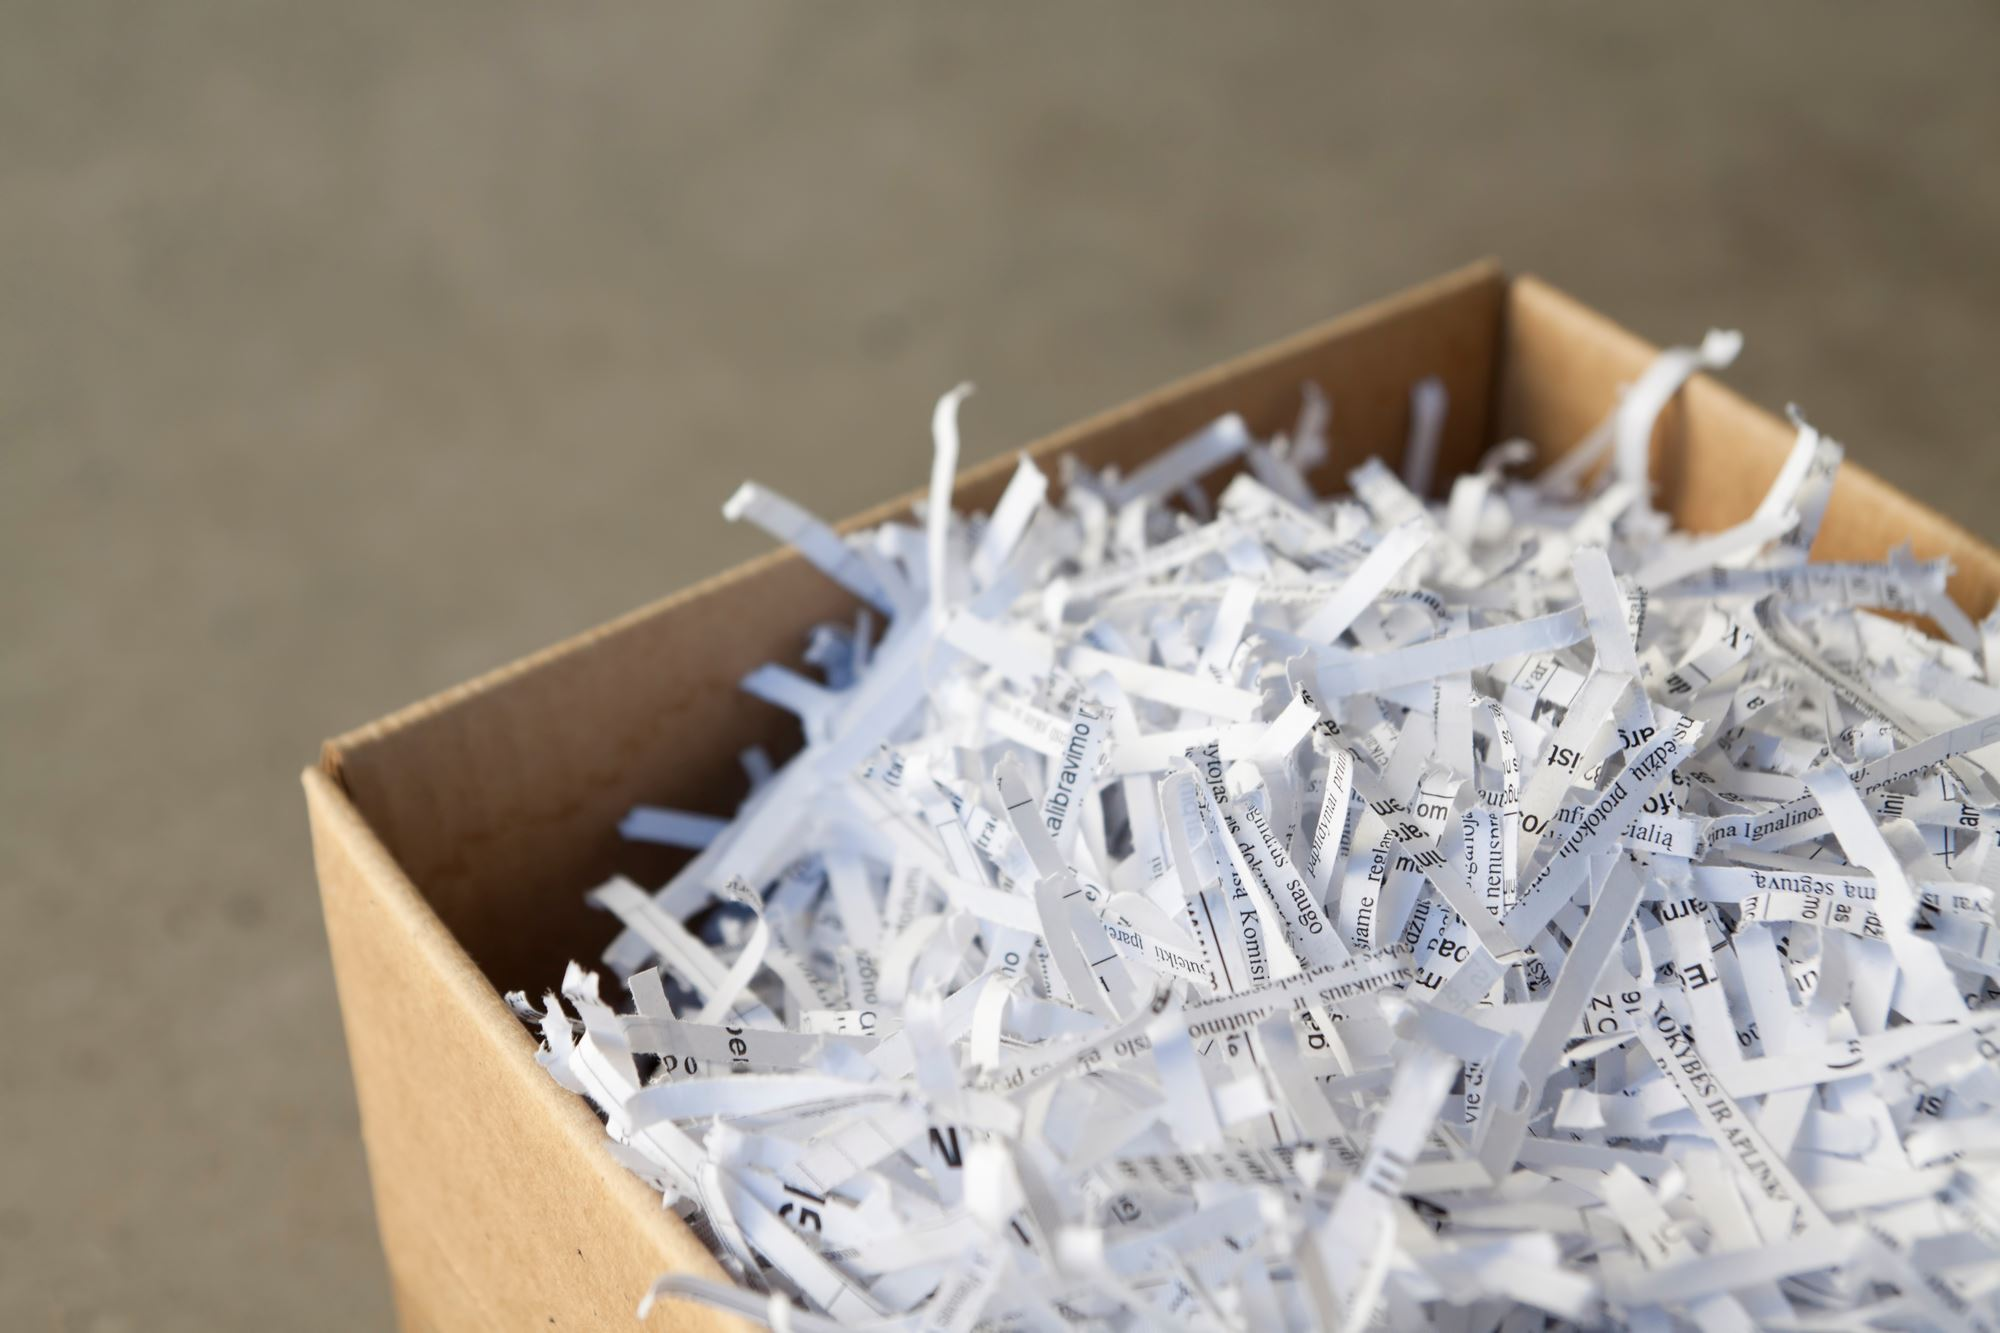 Box of shredded paper